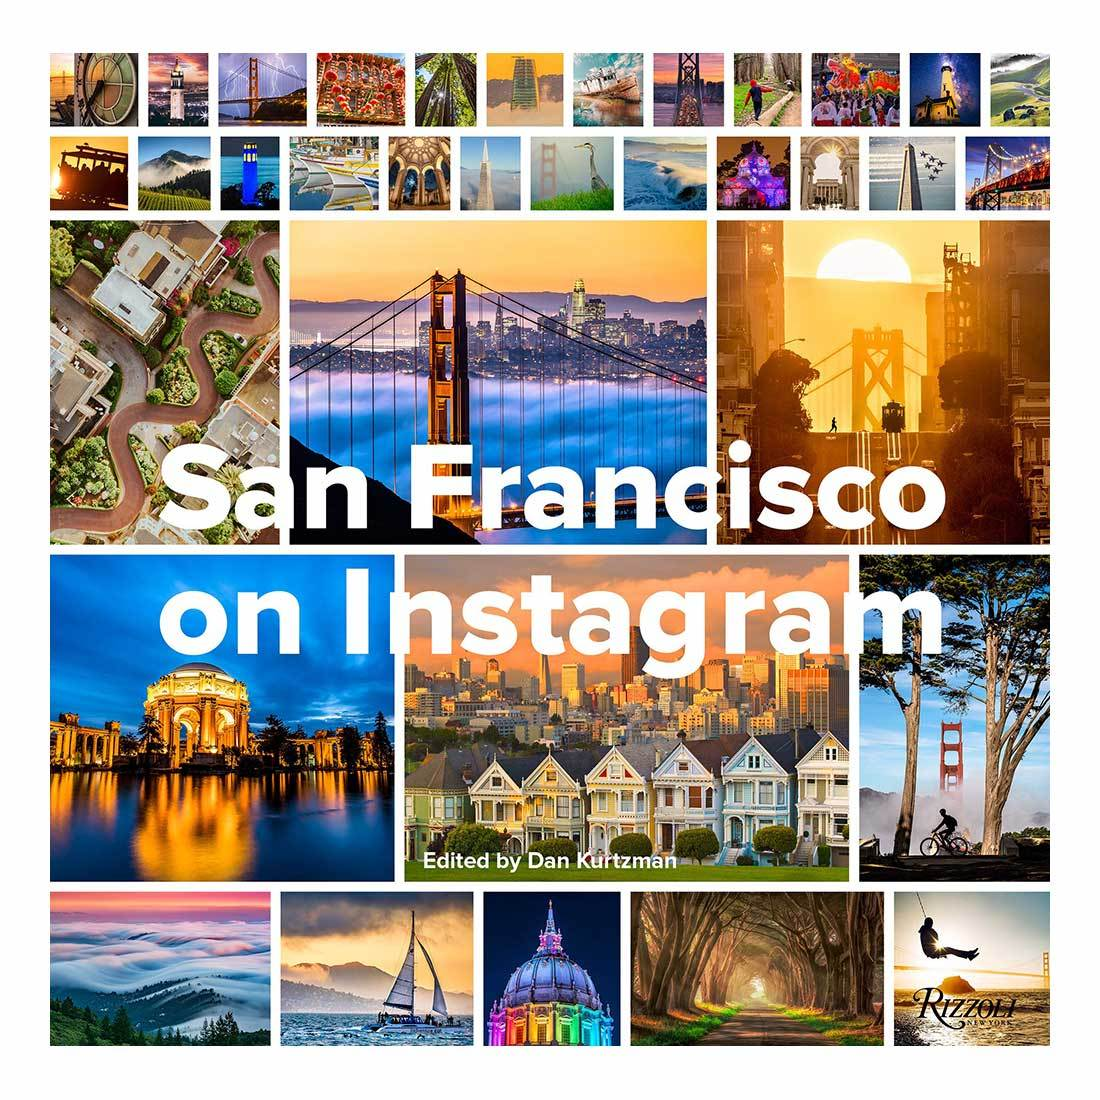 San Francisco on Instagram